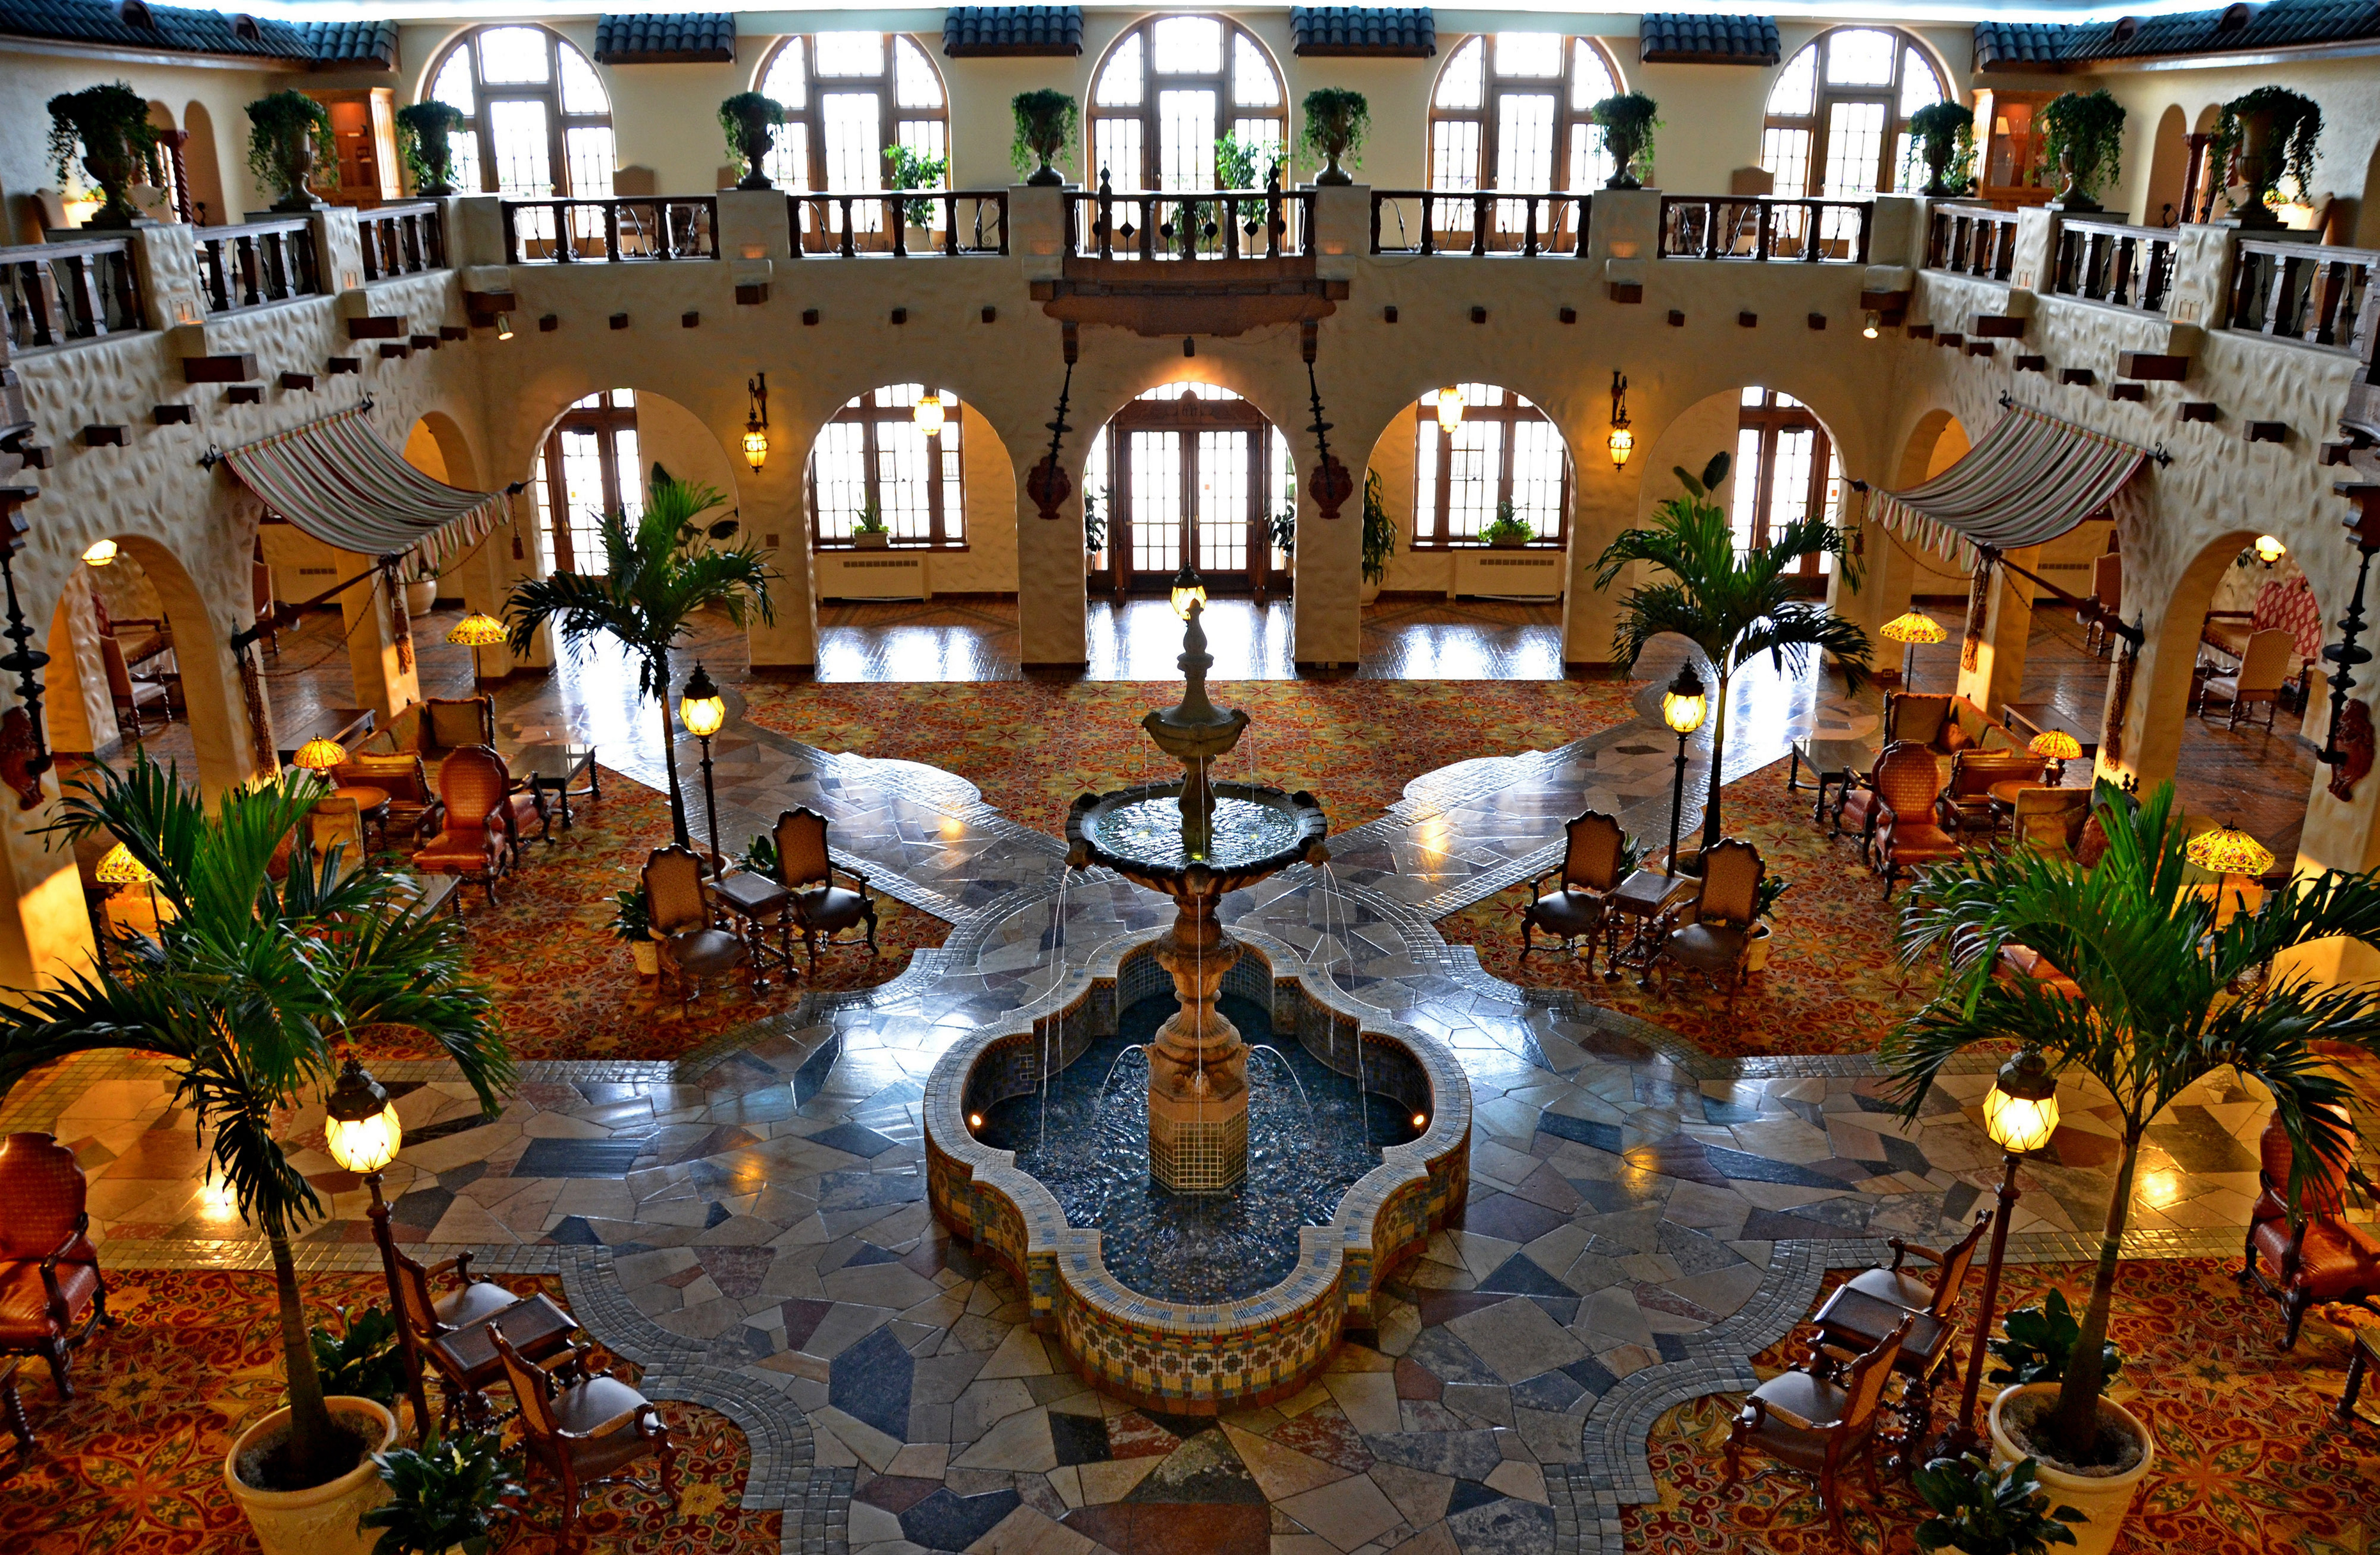 The interior of the Hershey Hotel might be the second sweetest thing you experience in the town chocolate built.